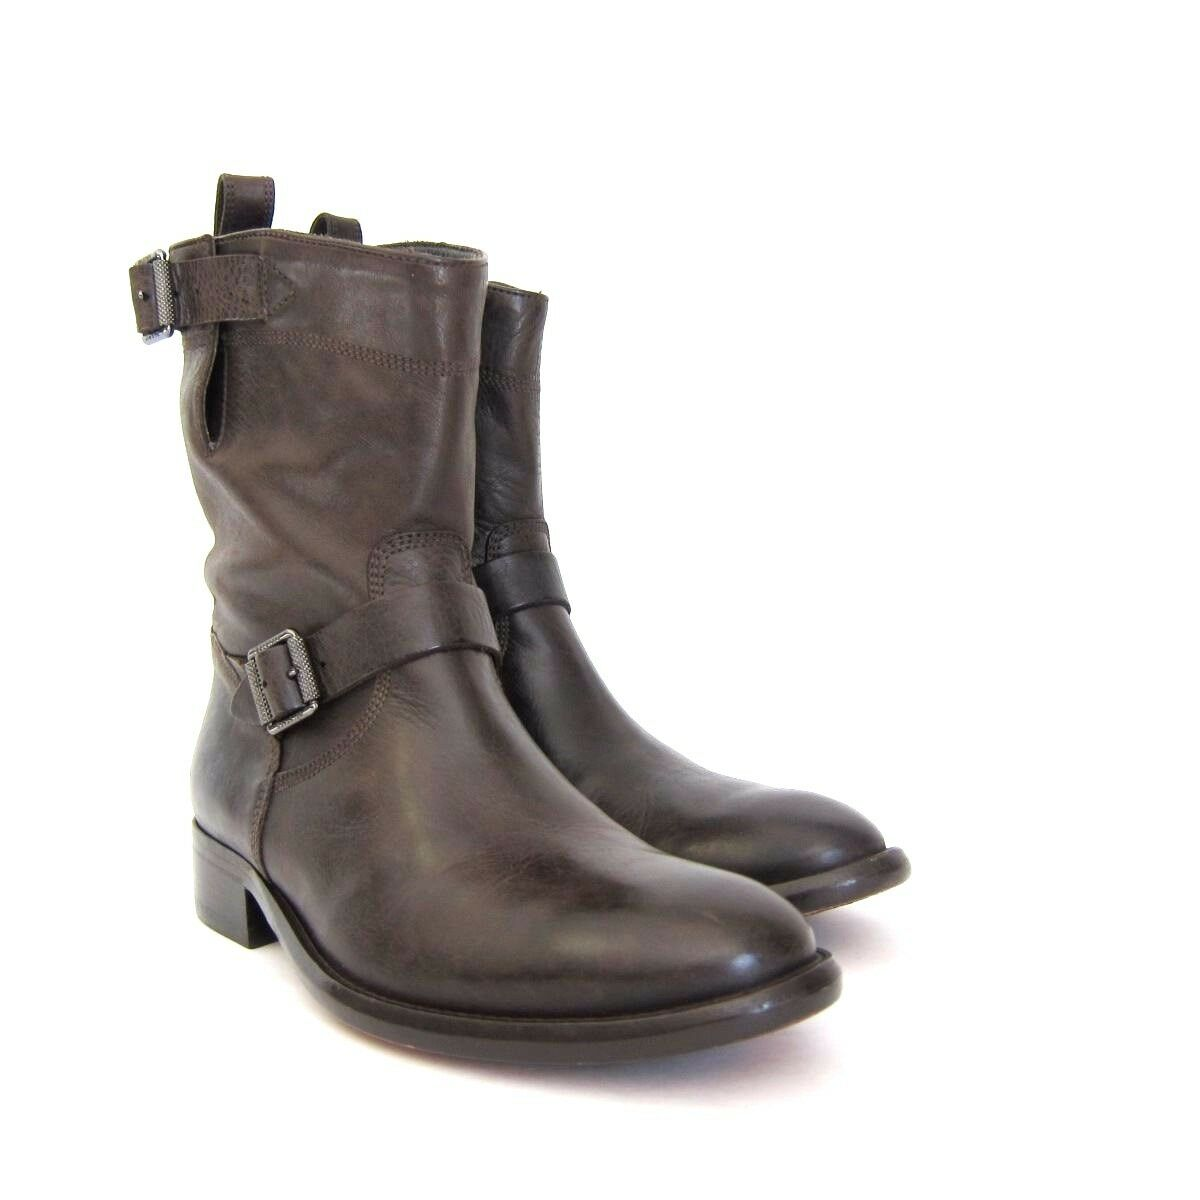 S-954120 New Belstaff Bedford Matte Brown Short Boot Shoes Size  -8/Marked-38